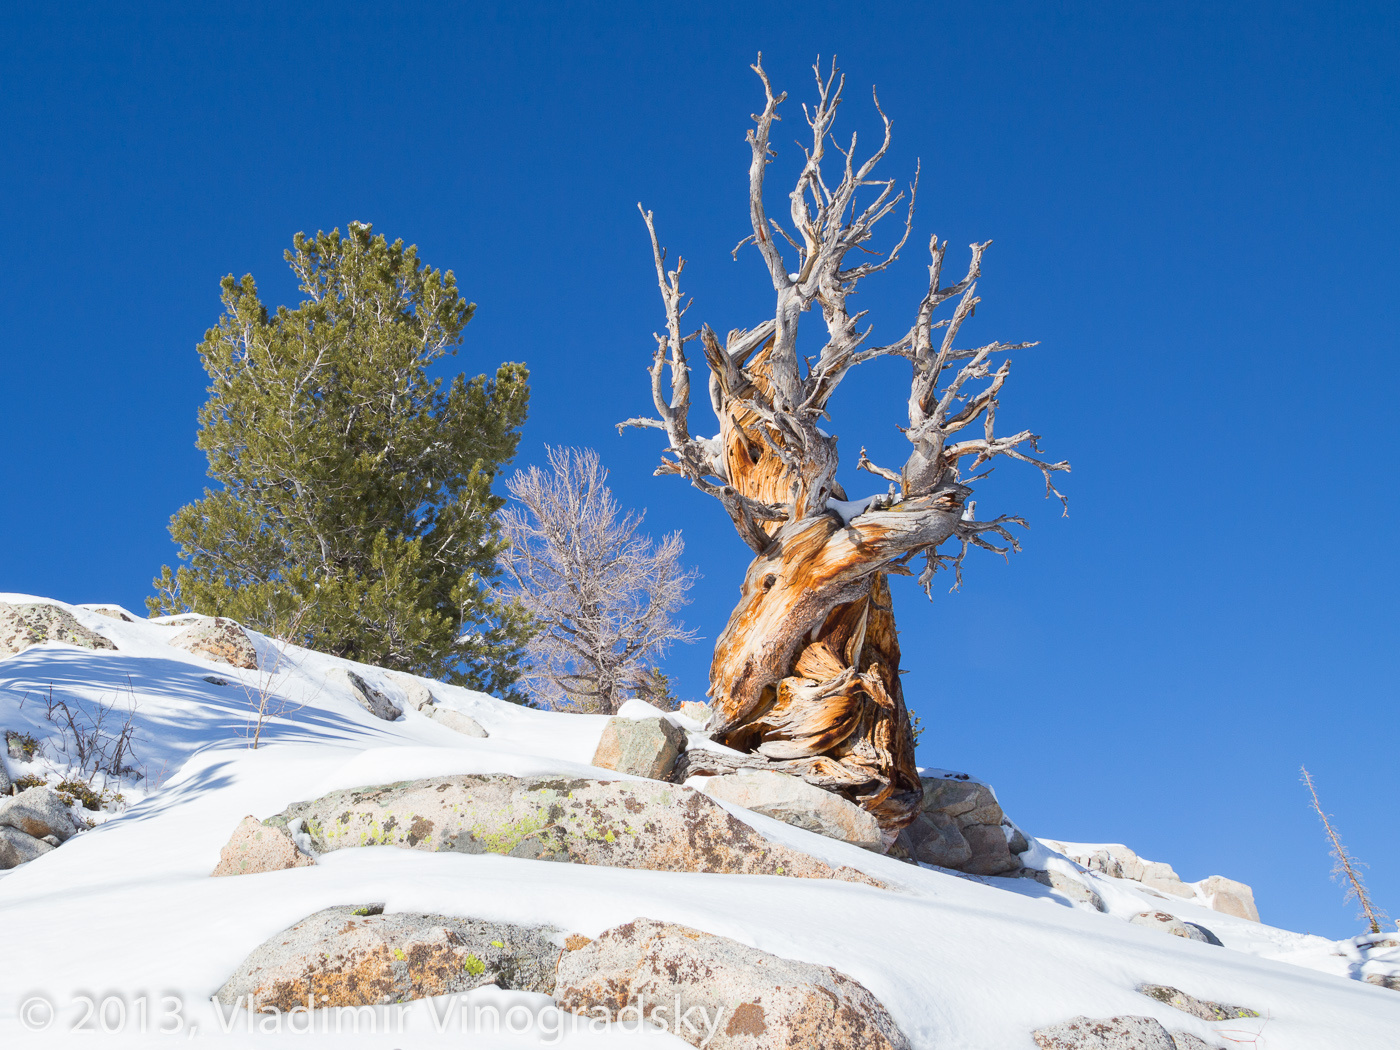 A twisted pine on the mountaintop